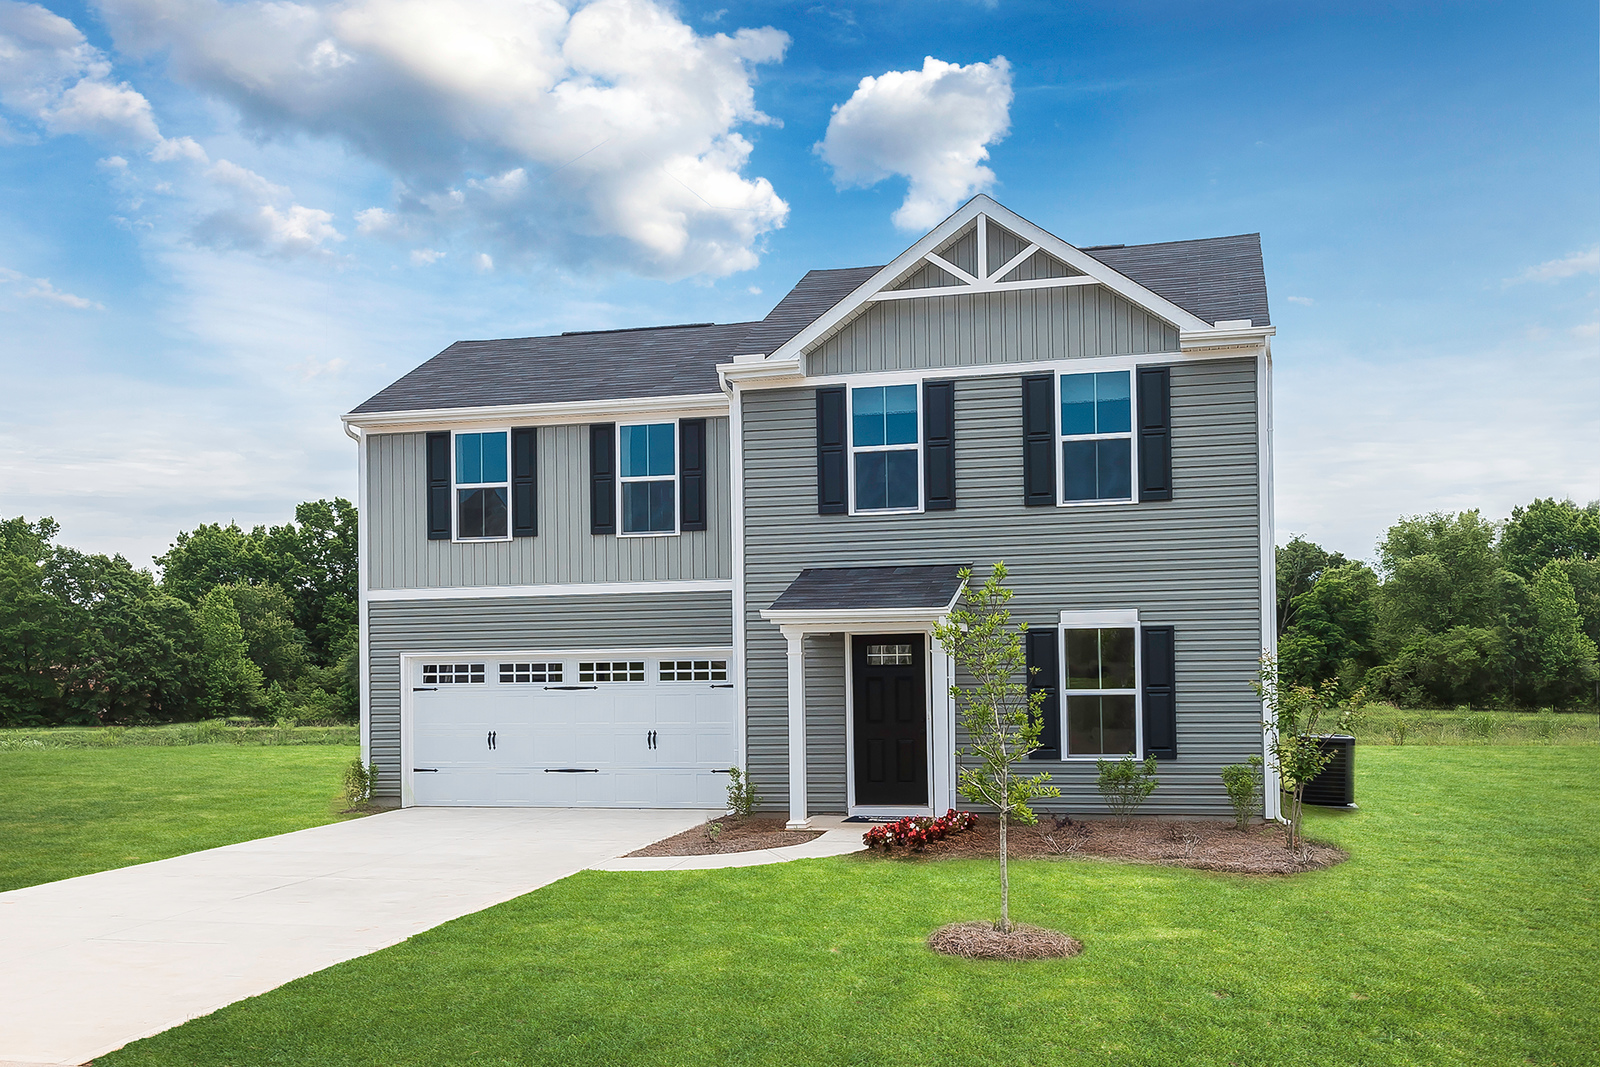 Marvelous New Homes For Sale At Castlebrook In Greenville Sc Within Download Free Architecture Designs Embacsunscenecom